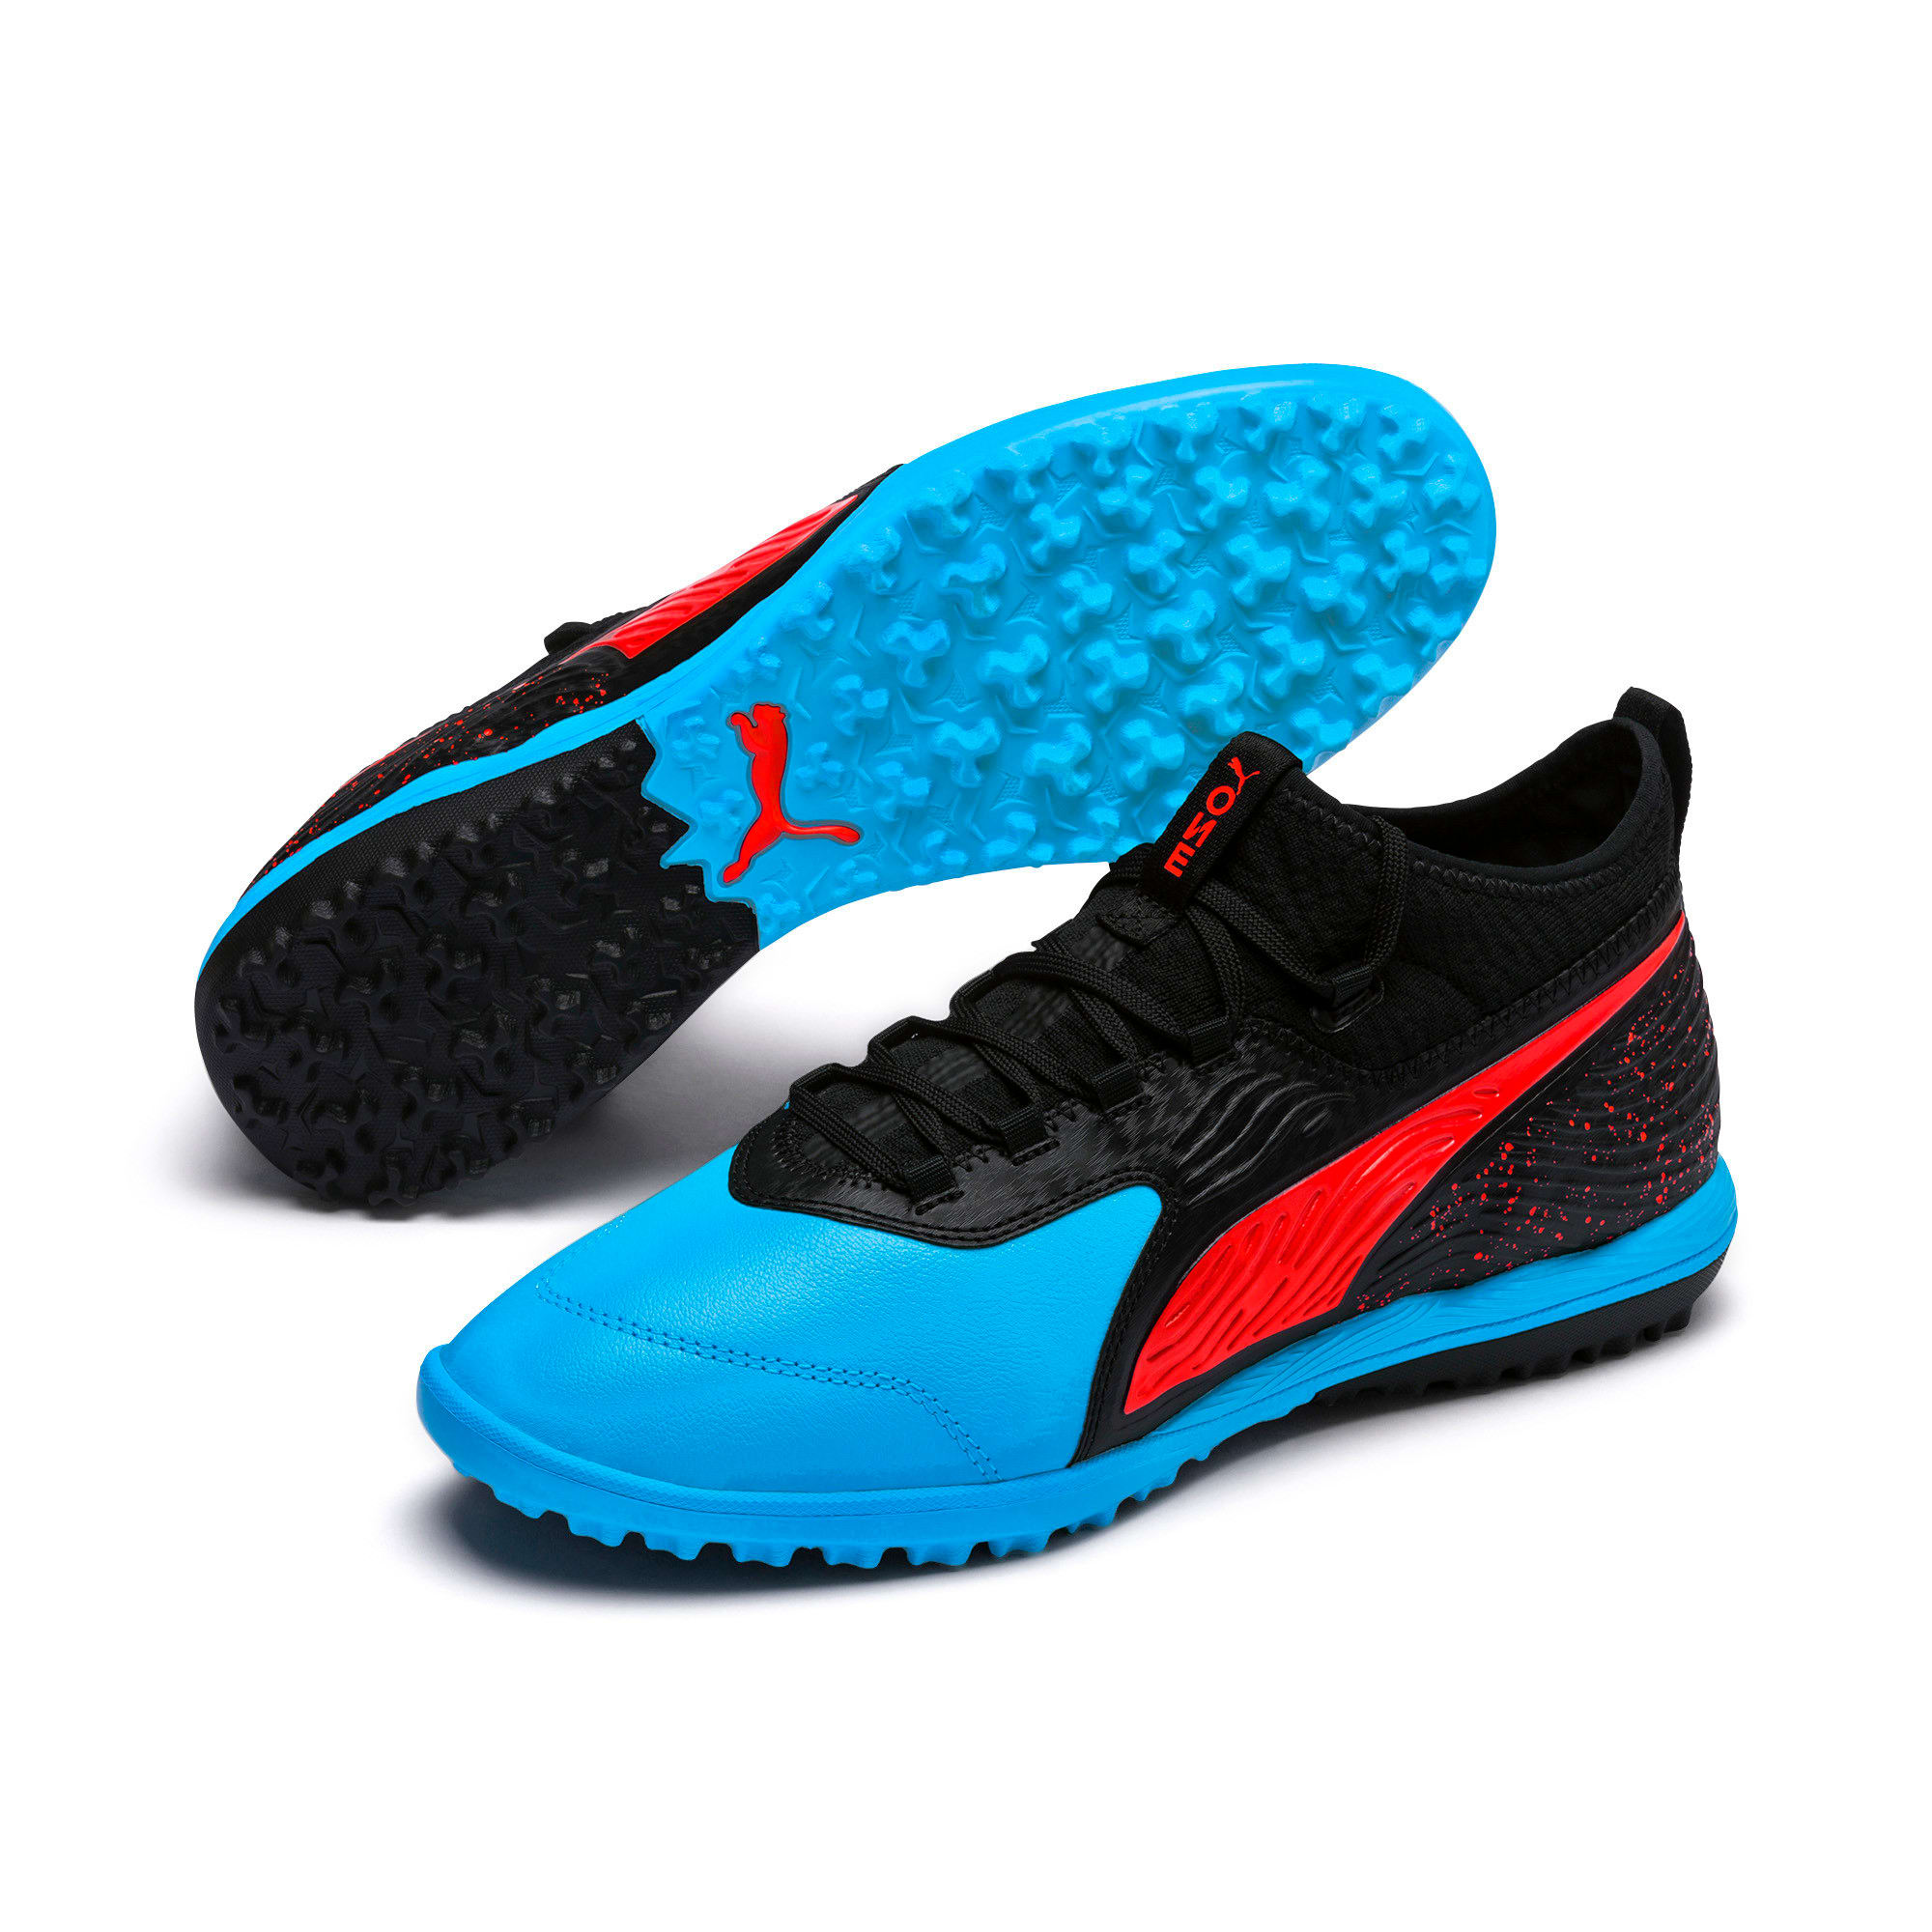 Thumbnail 3 of PUMA ONE 19.3 TT Men's Soccer Shoes, Bleu Azur-Red Blast-Black, medium